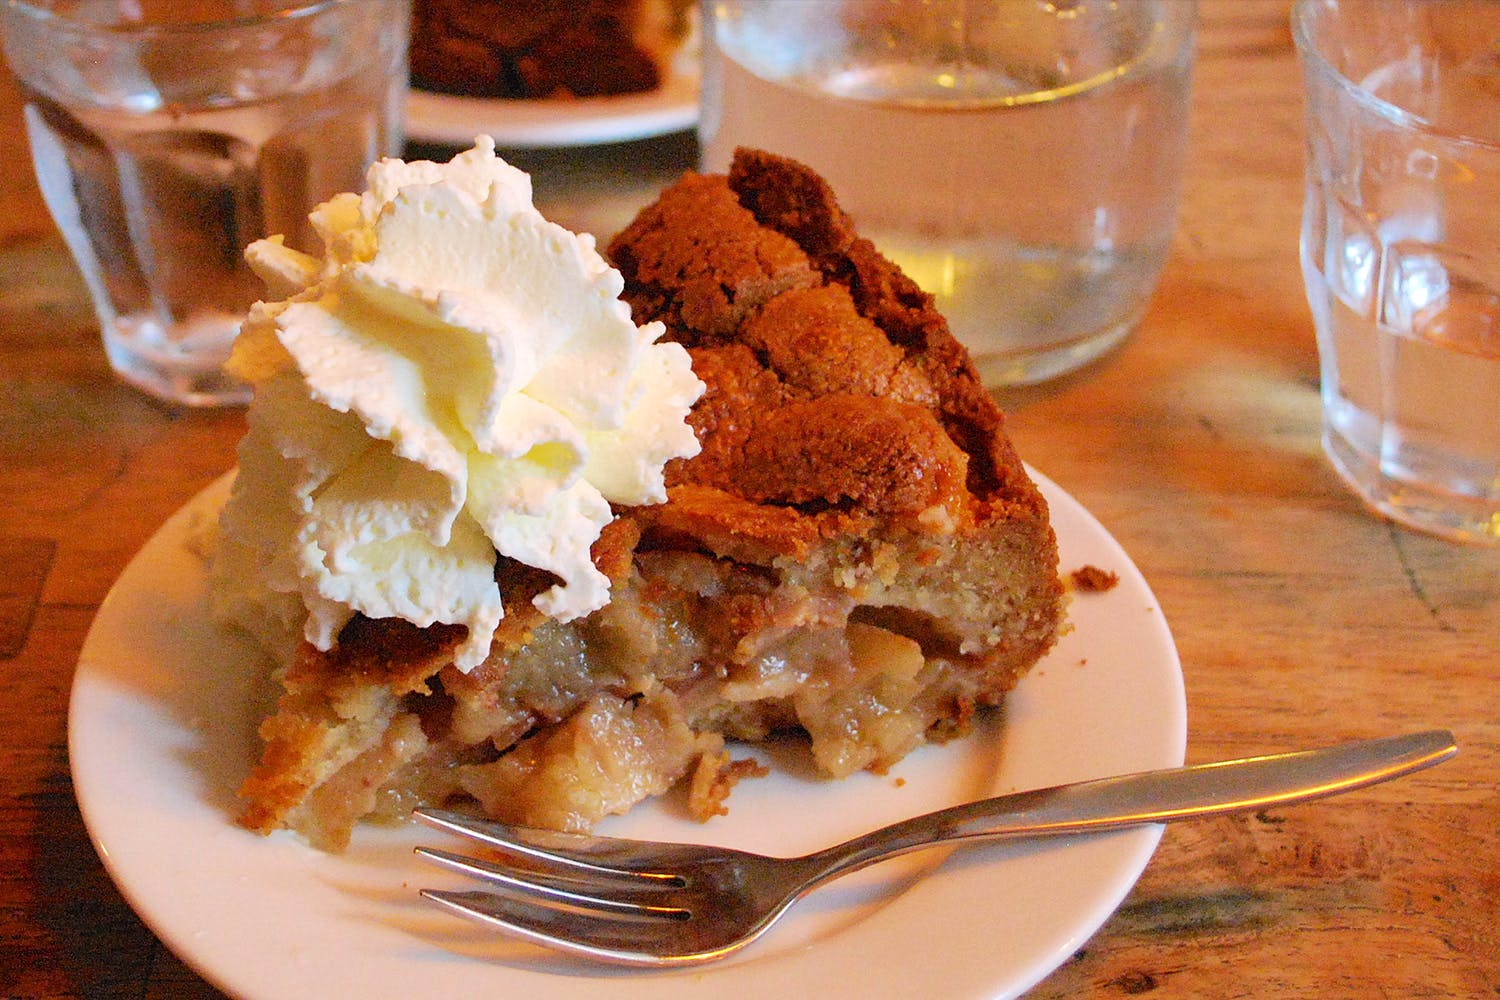 Dish,Food,Cuisine,Ingredient,Dessert,Bread pudding,Baked goods,Produce,Whipped cream,Pudding